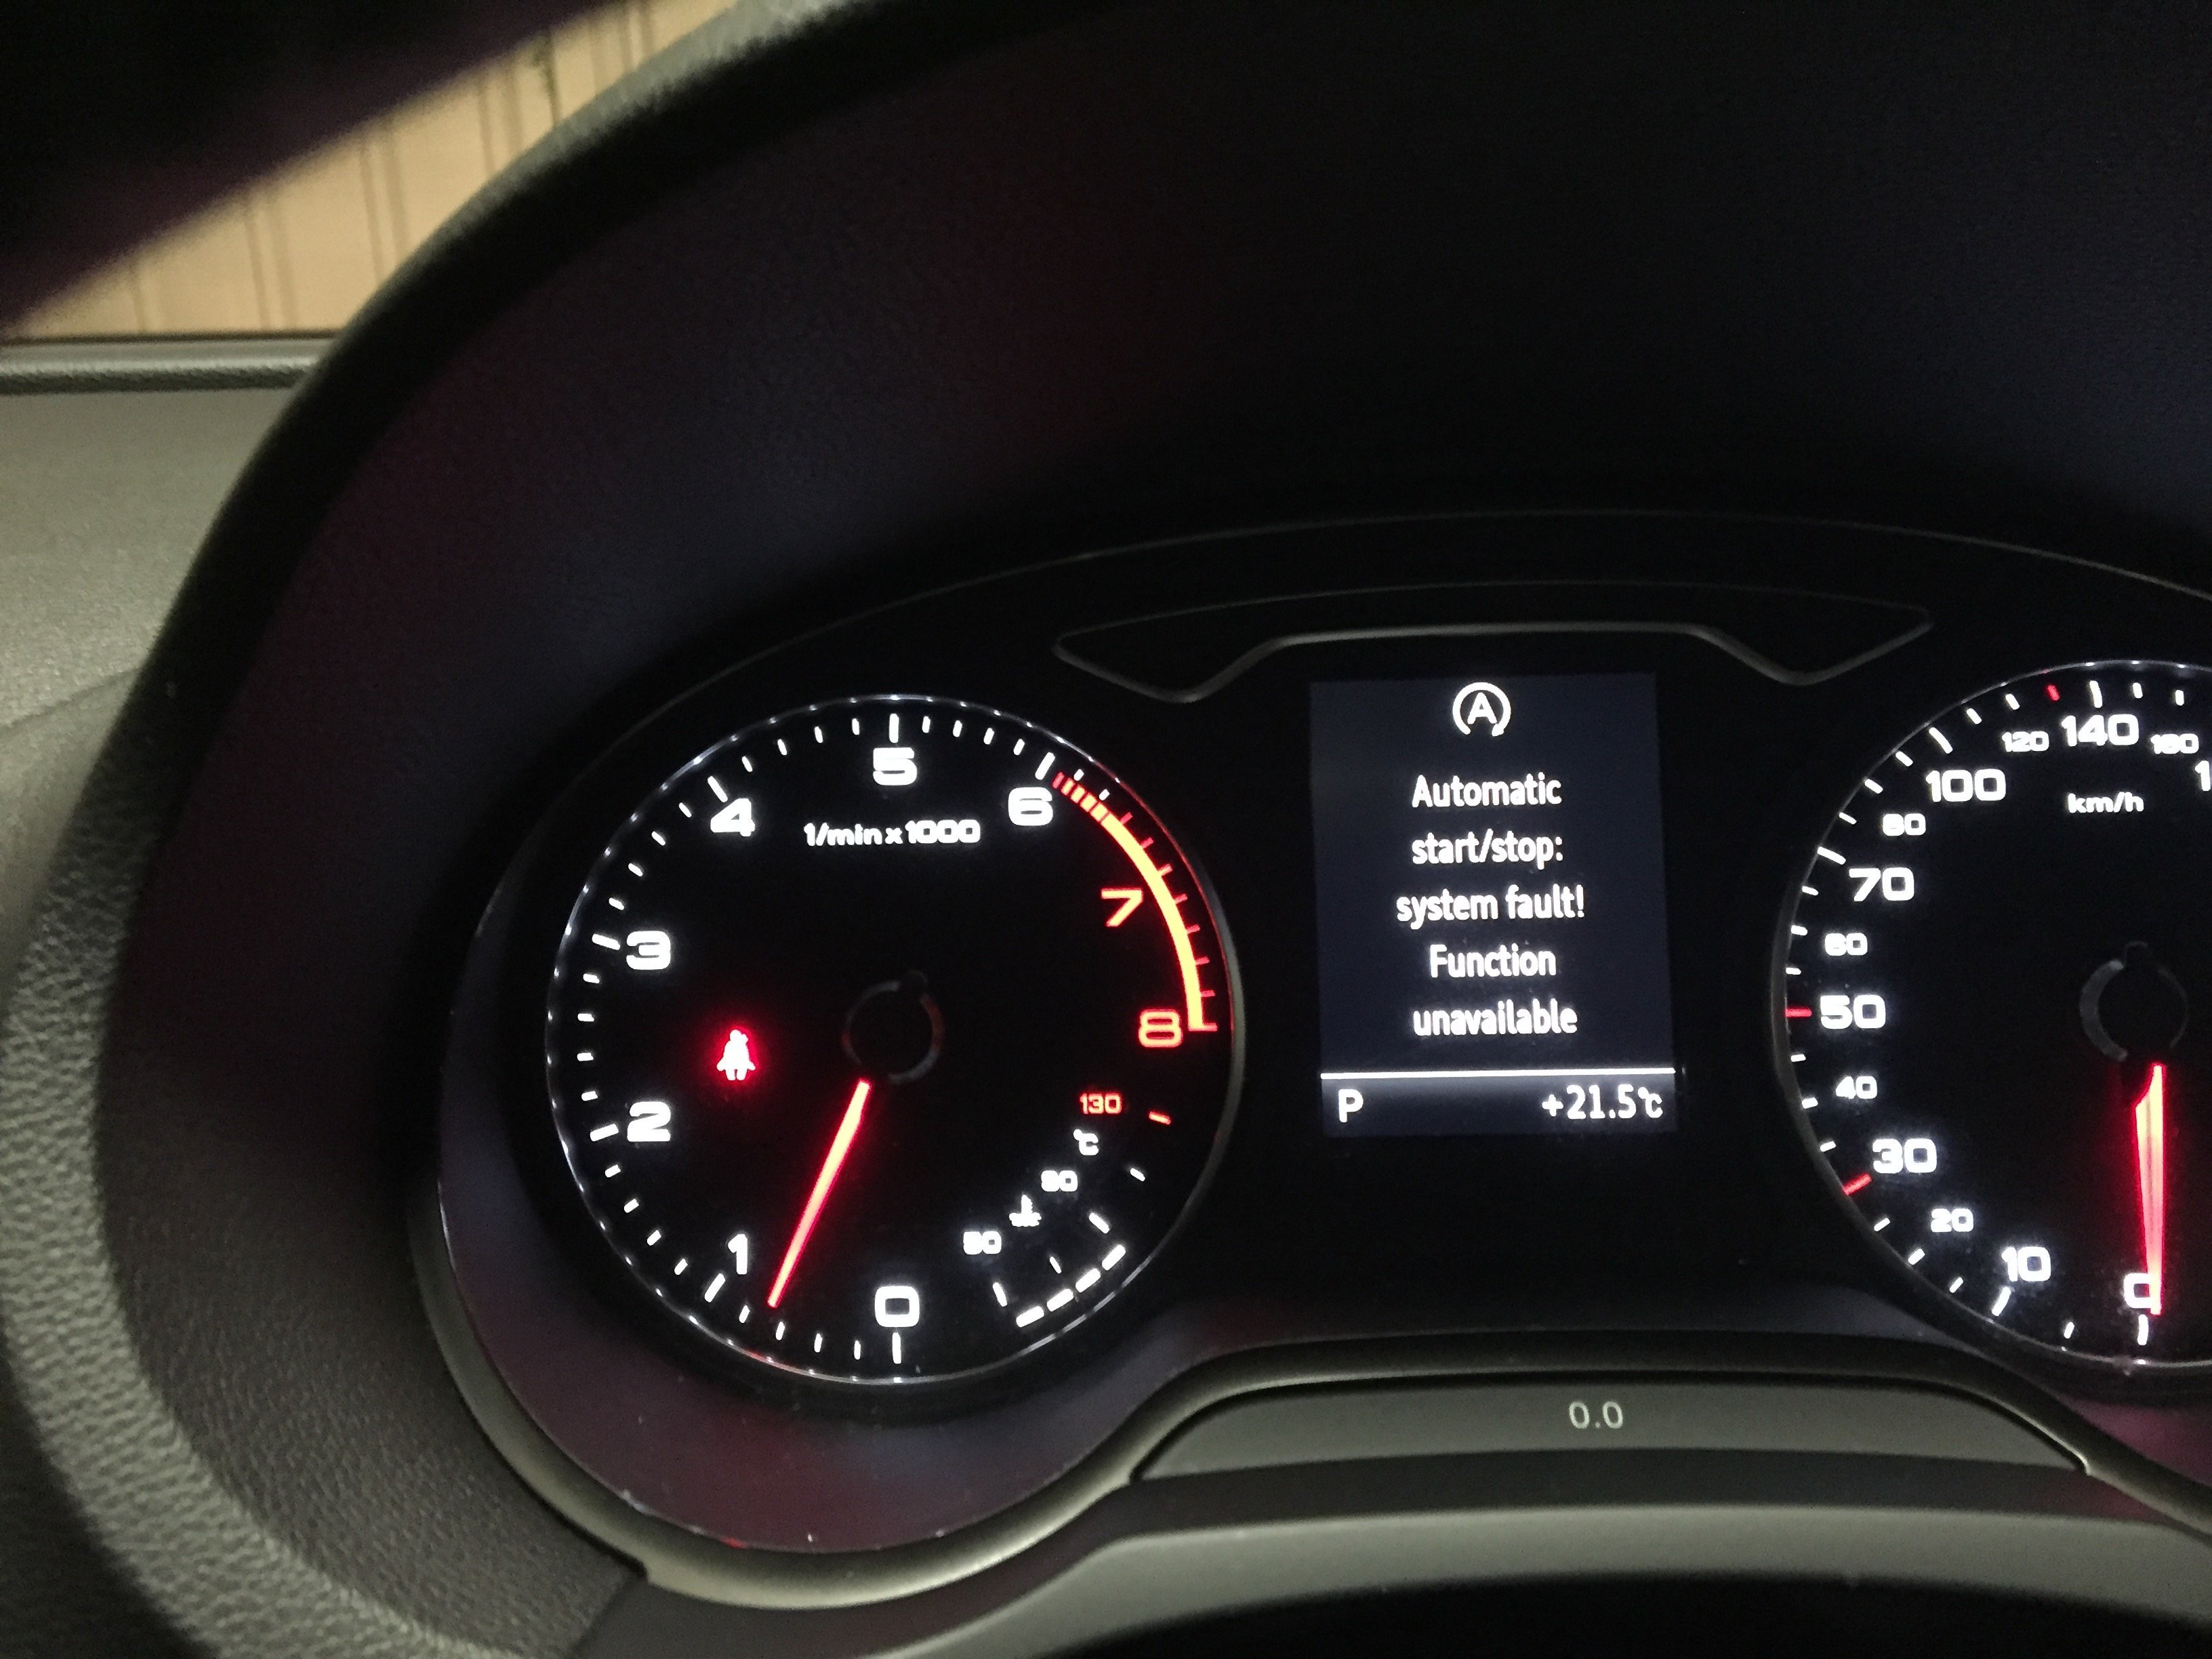 Automatic Start stop not functioning / Error Automatic Start